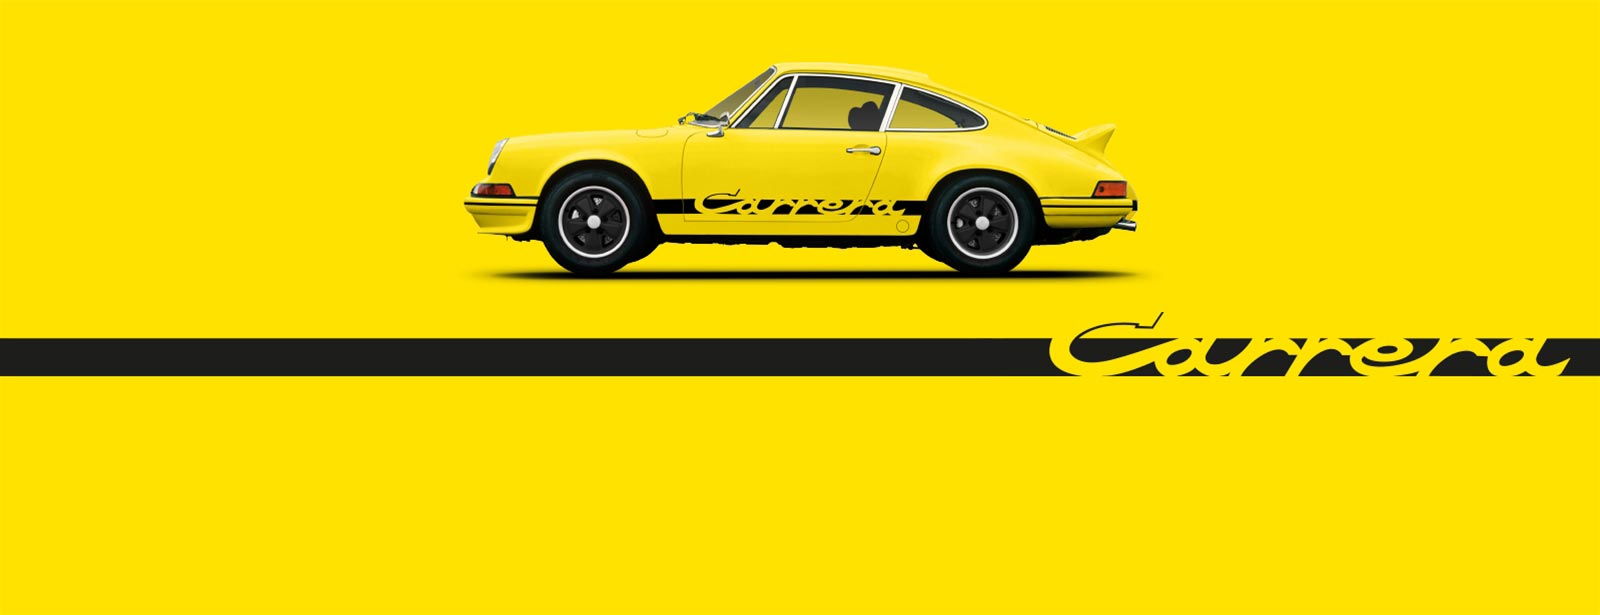 The history. - Porsche 911 Carrera RS.